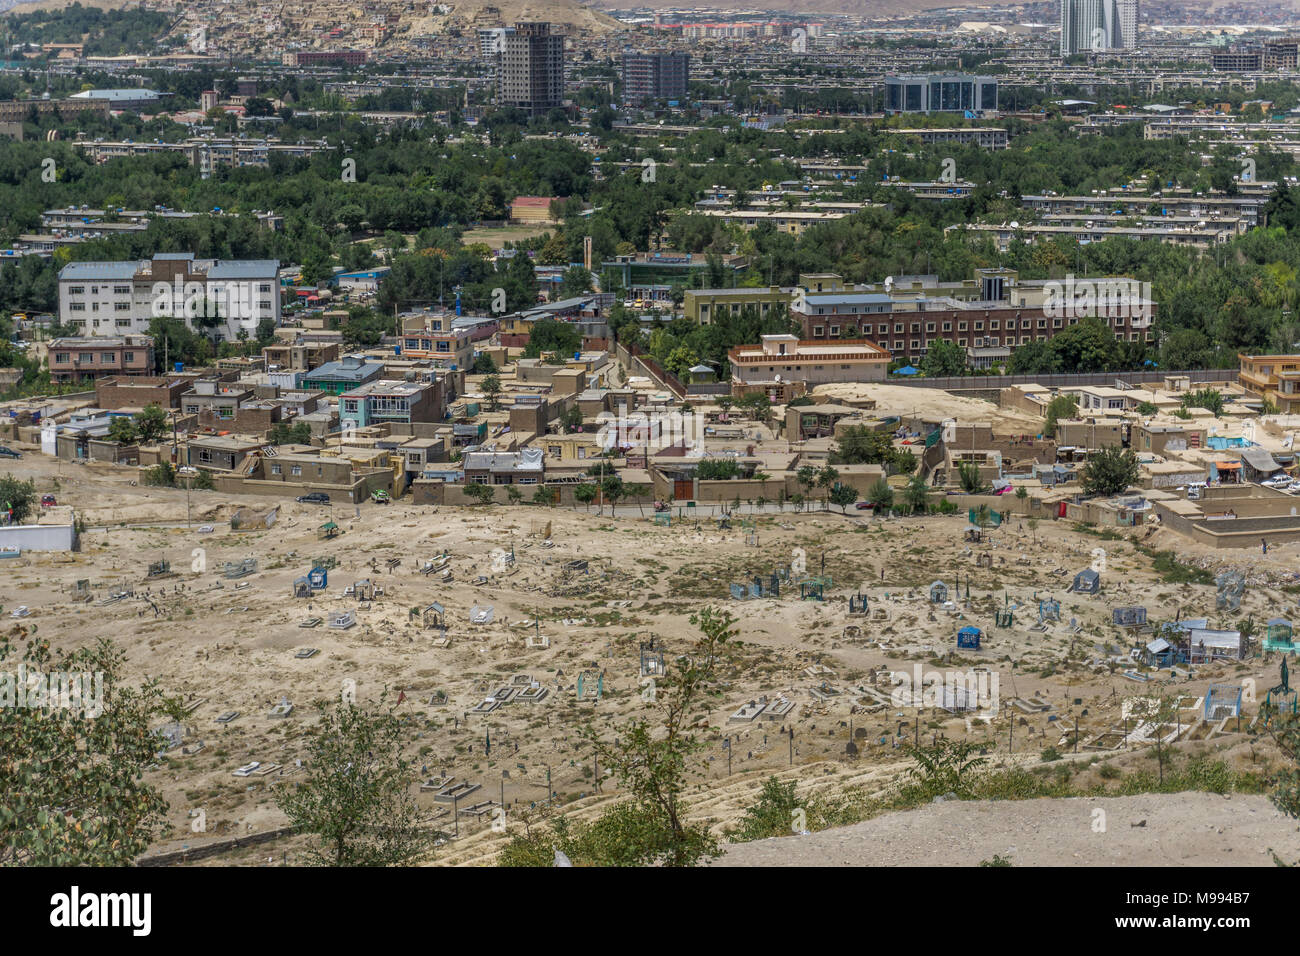 Overview of Kabul, Afghanistan - Stock Image